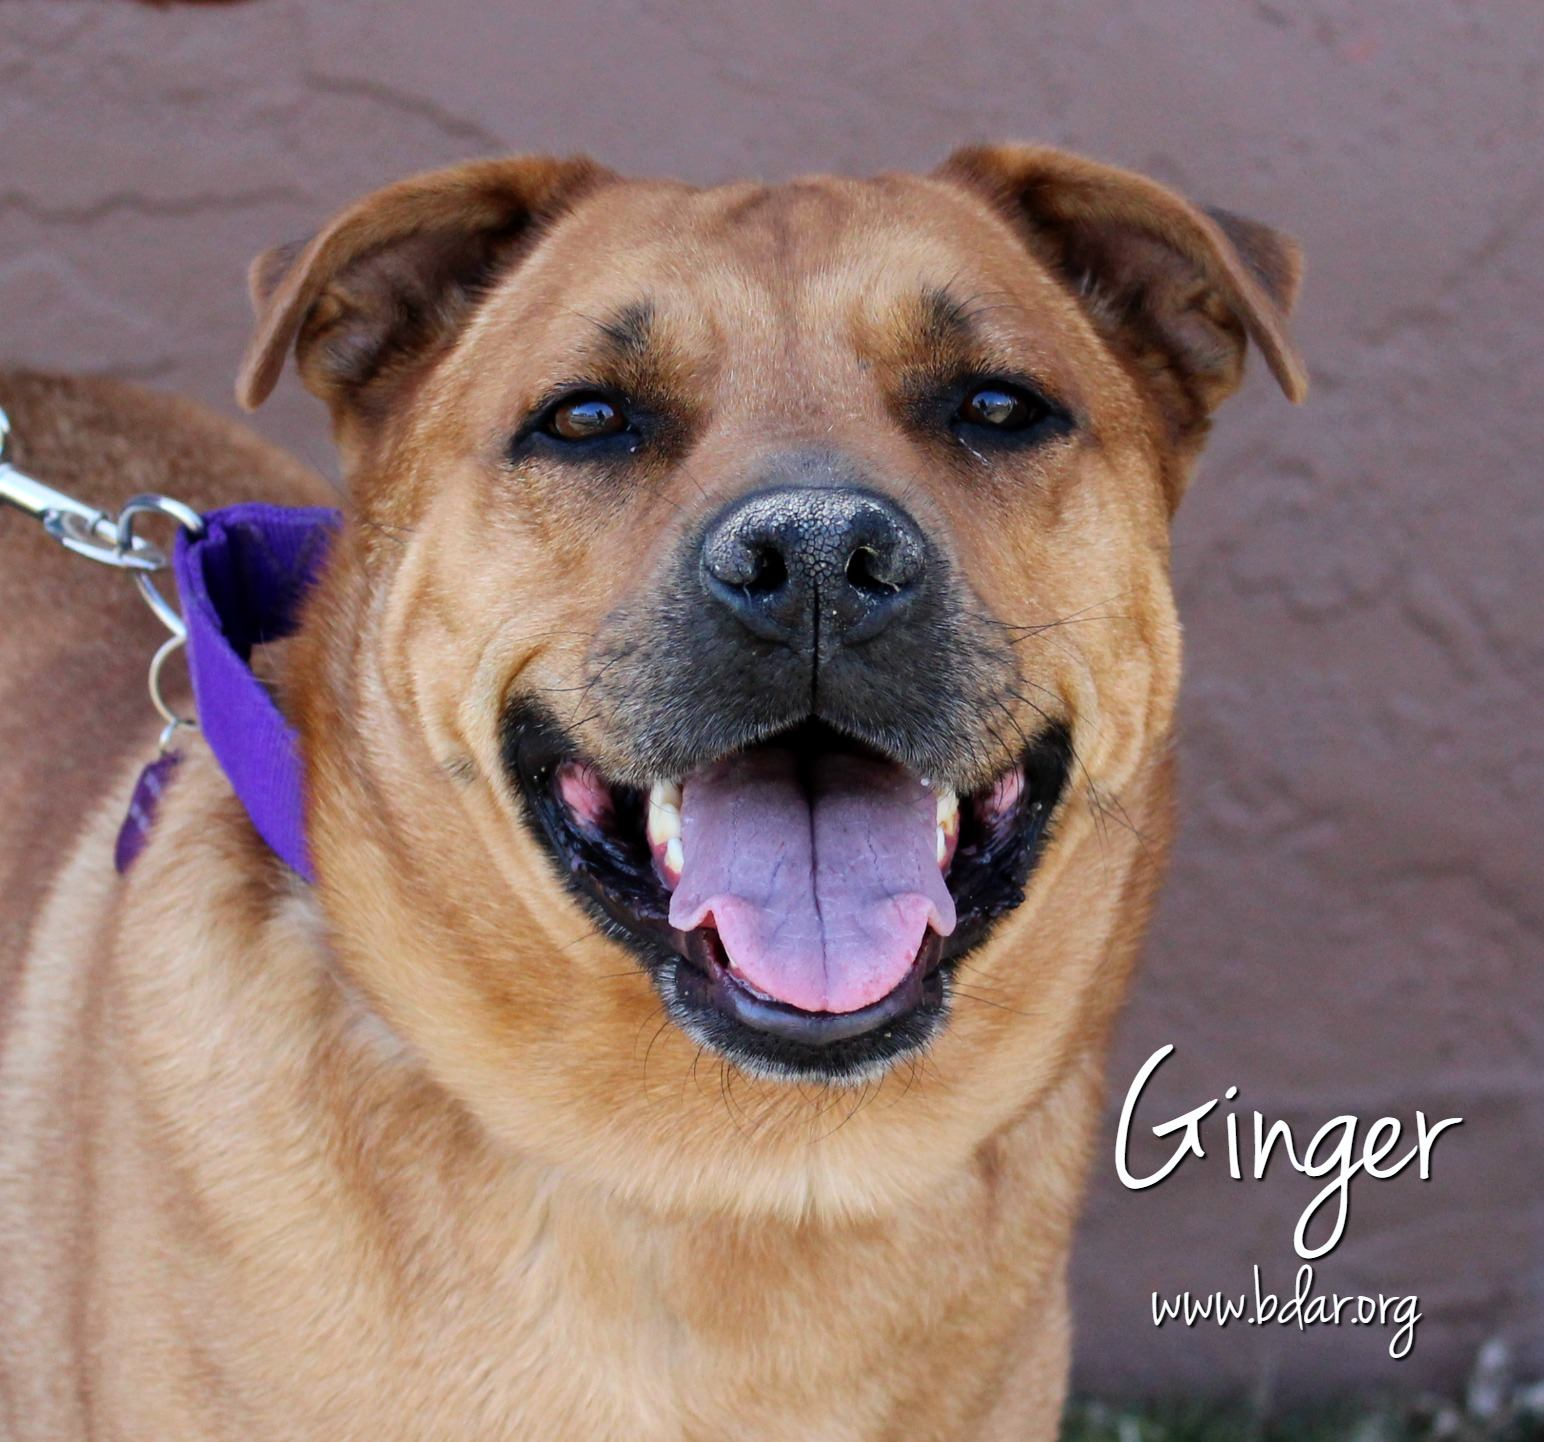 Ginger (whose seizure condition made her ineligible for adoption) was able to live out her life in foster care because of Clyde's fund.